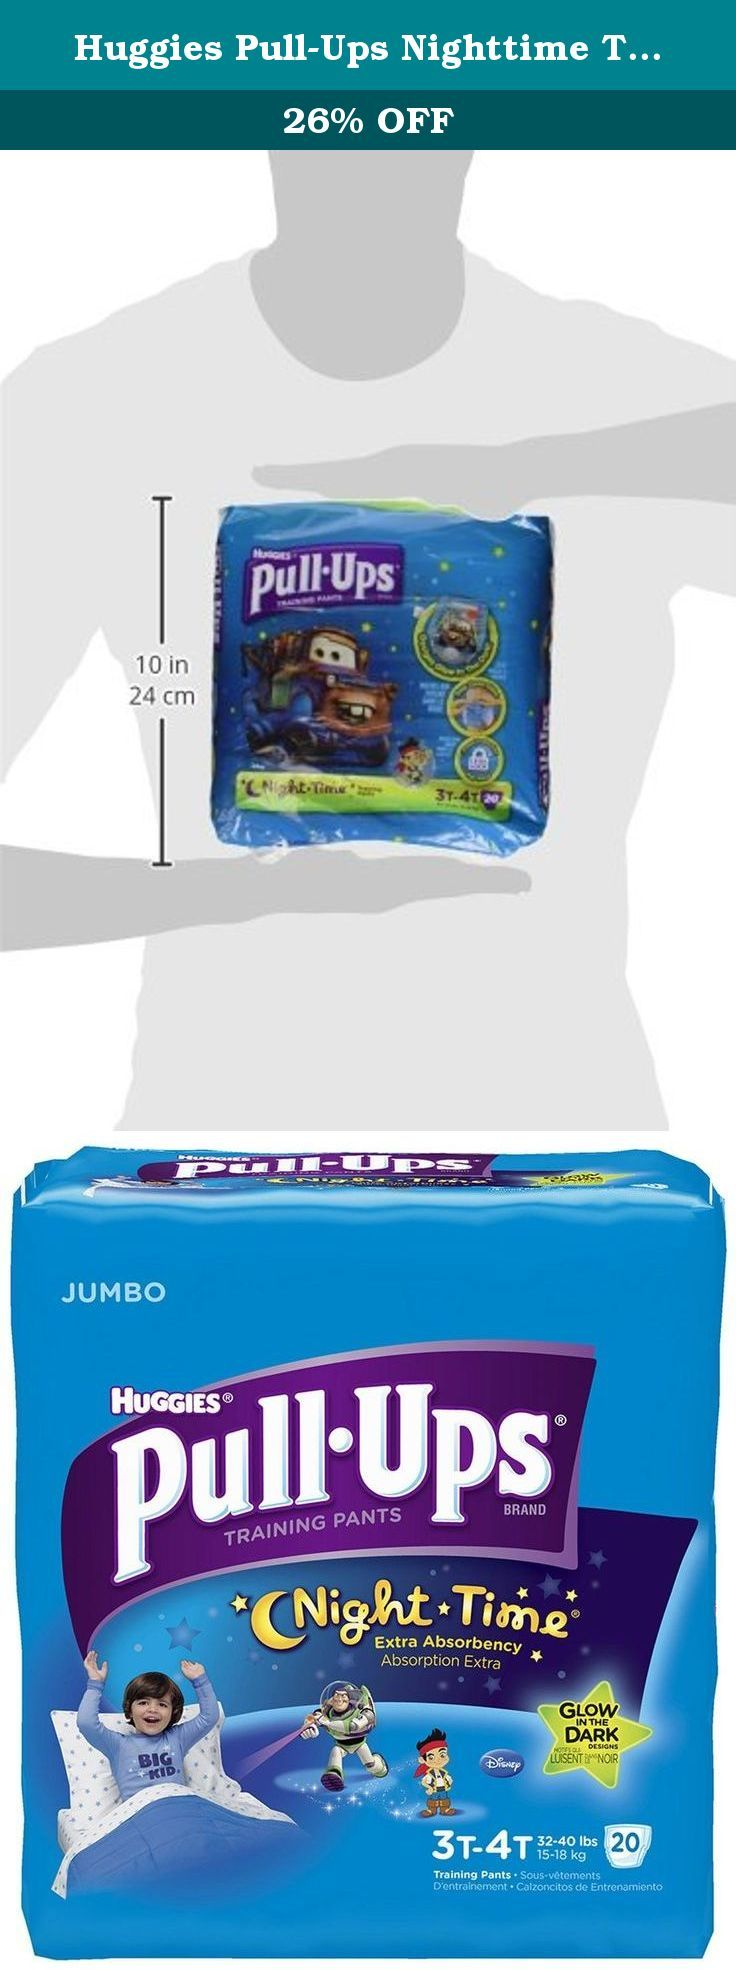 Huggies Pull-Ups Nighttime Training Pants for Boys, 20 Count. The most absorbent training pant, with zones designed for boys and girls. Glow in the dark Disney designs make staying consistent at night more fun, with a three-step glow show. Styles and characters may vary.